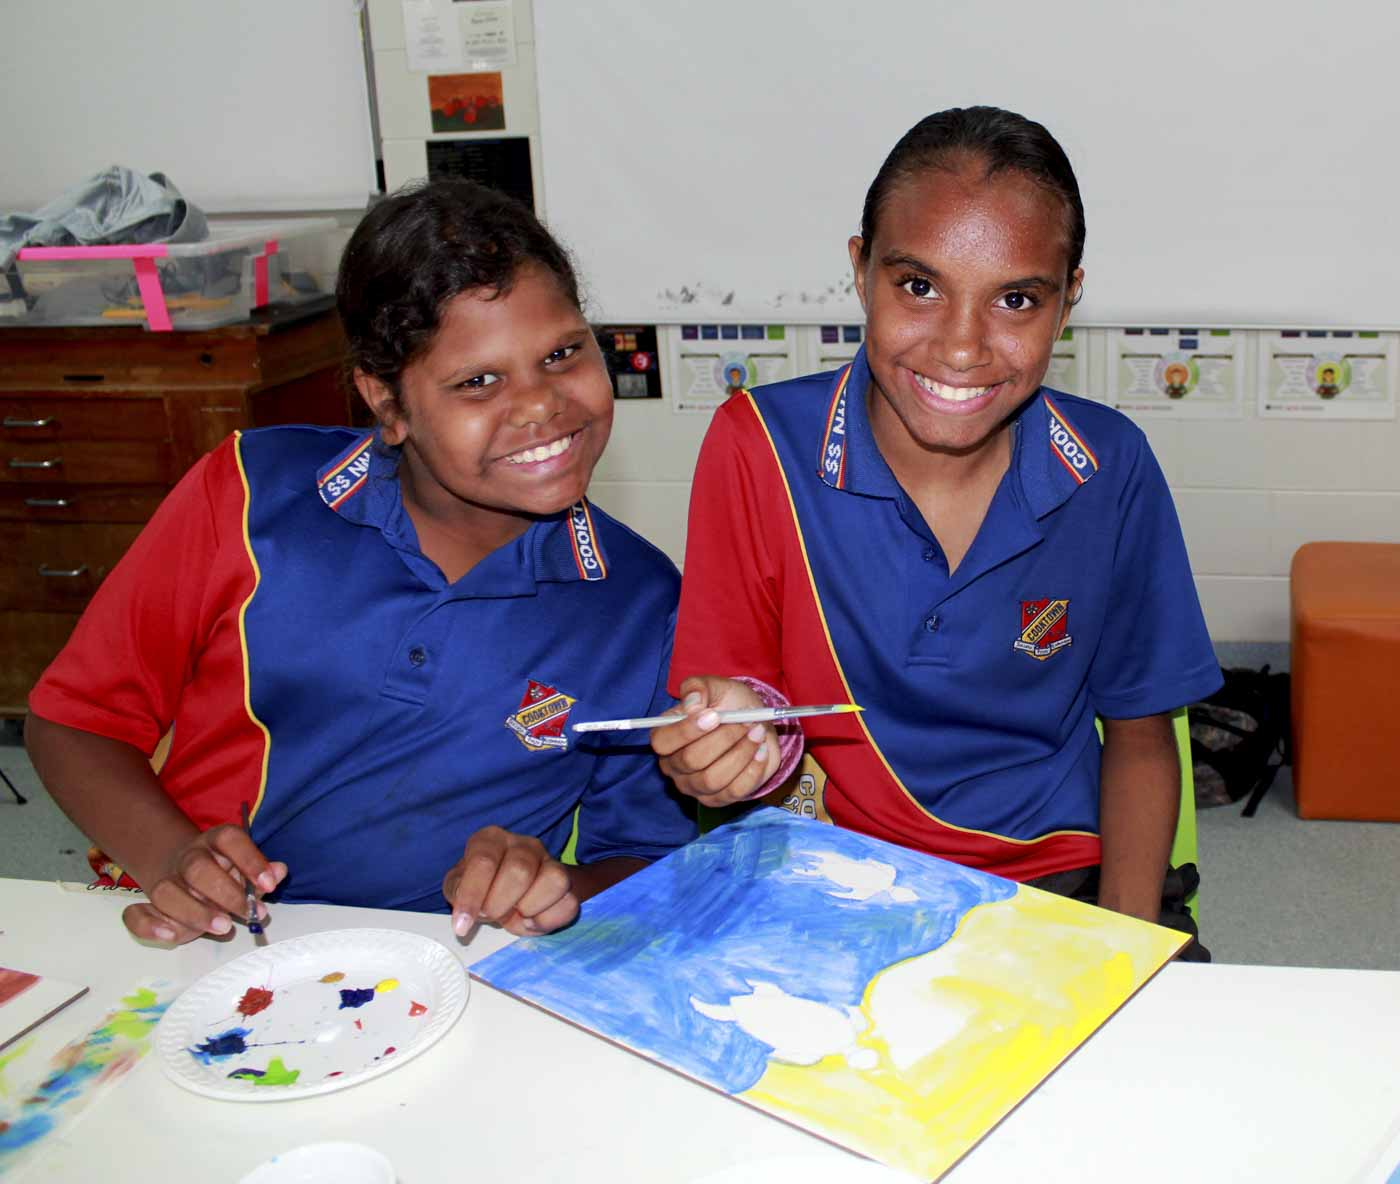 Two girls in a red and blue uniform smile at the camera while working on paintings. - click to view larger image